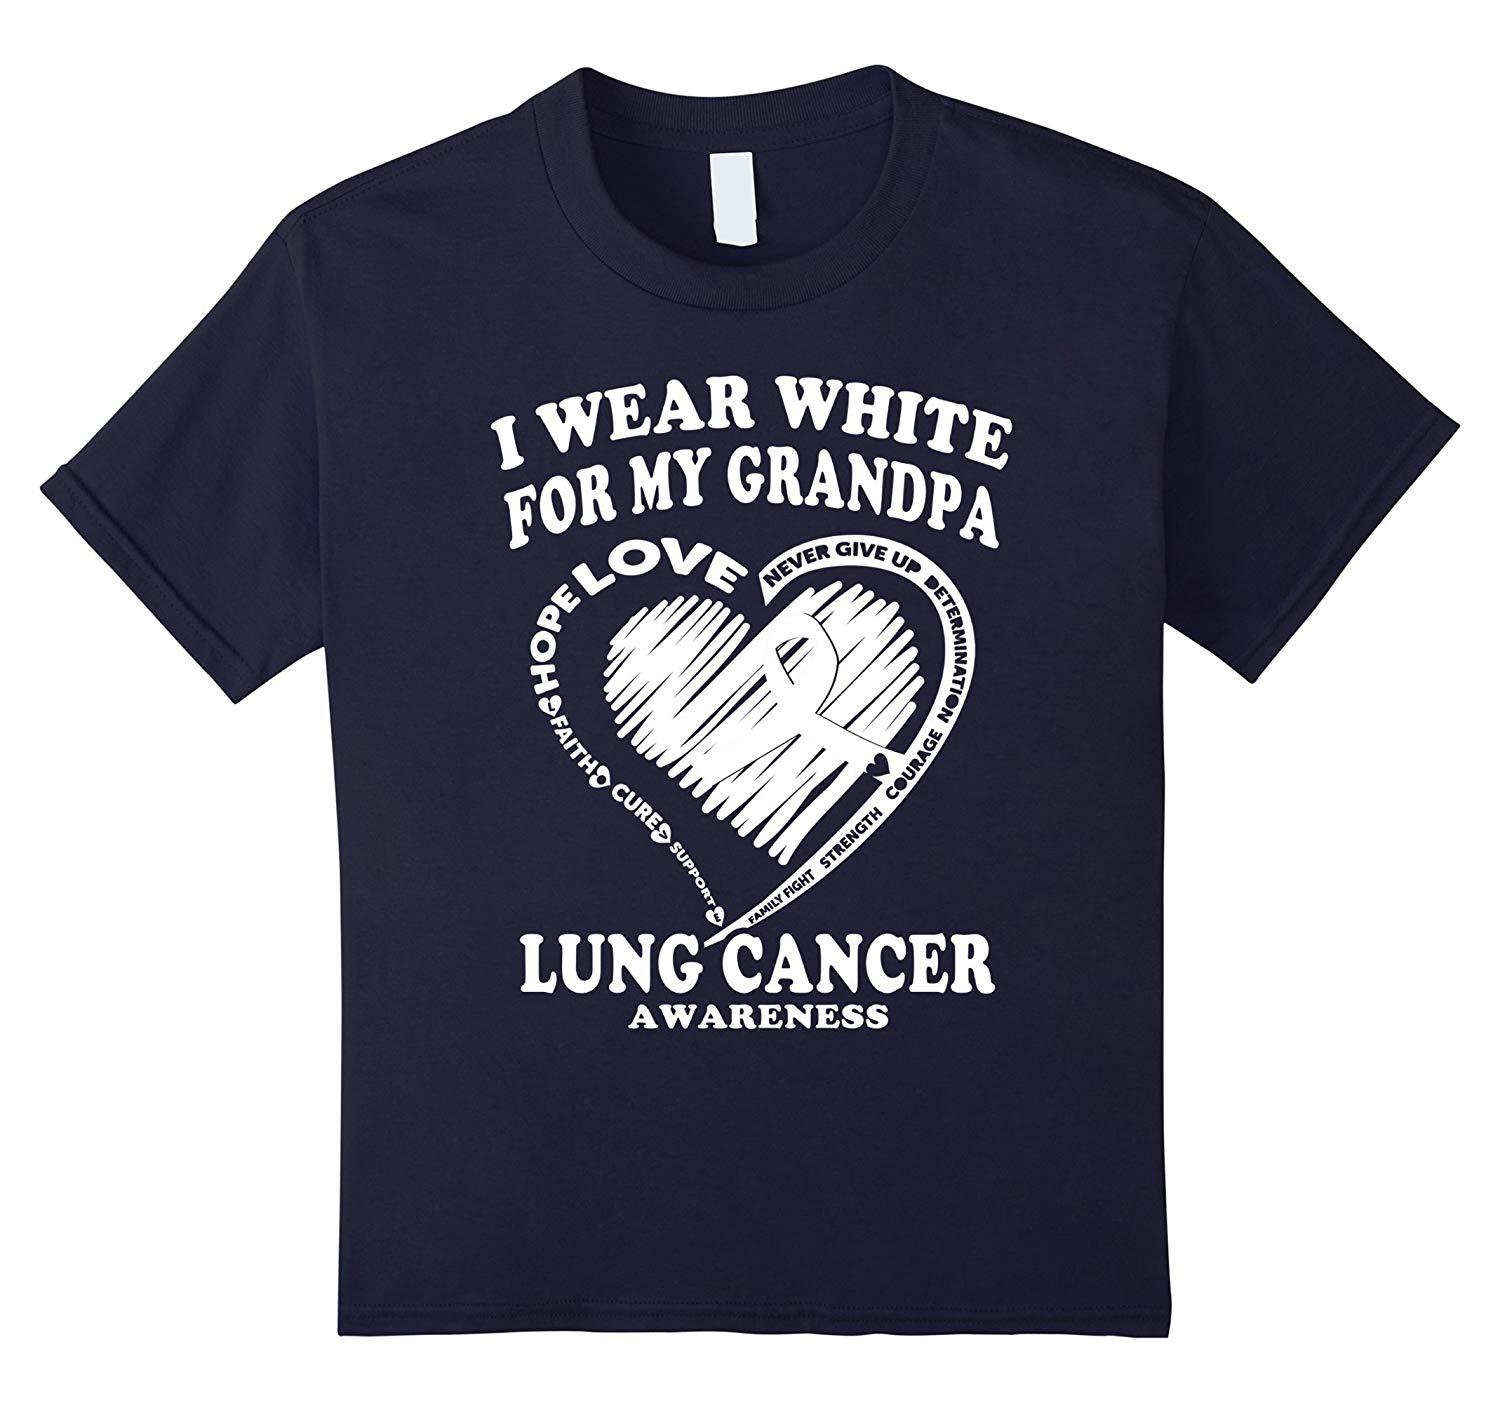 97eeb59313f Lung Cancer Awareness T Shirt I Wear White For My Grandpa Short Sleeve  Round Neck T Shirt Promotion Top T Shirt Sites Cool T Shirts For Boys  Online From ...